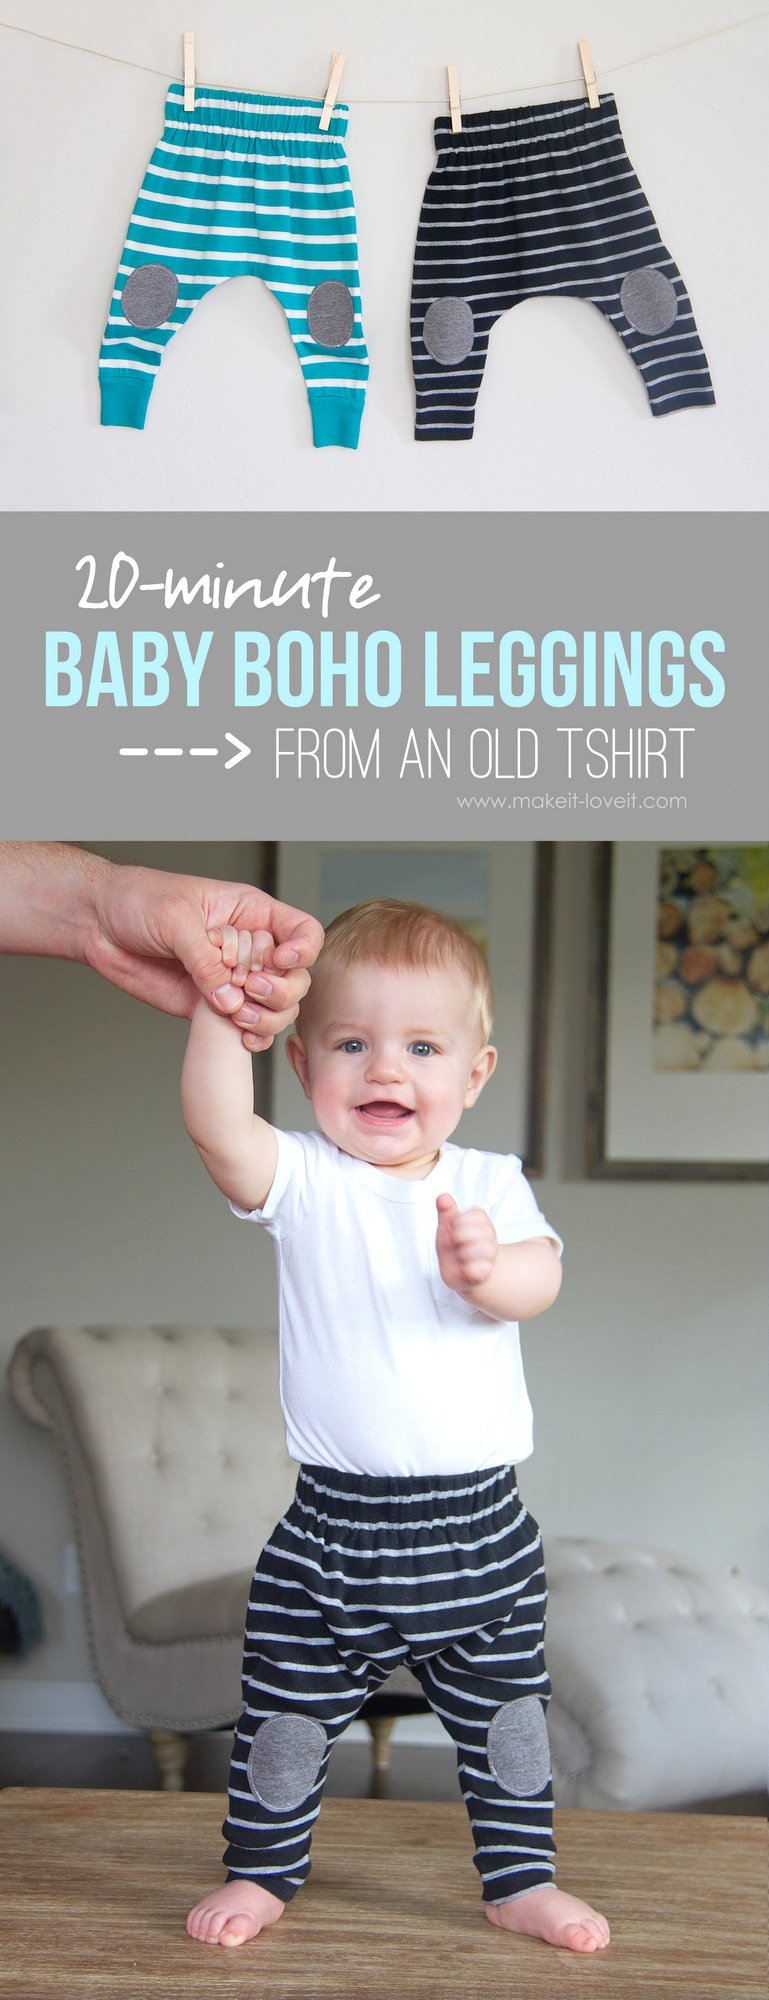 20-Minute Baby Boho Leggings